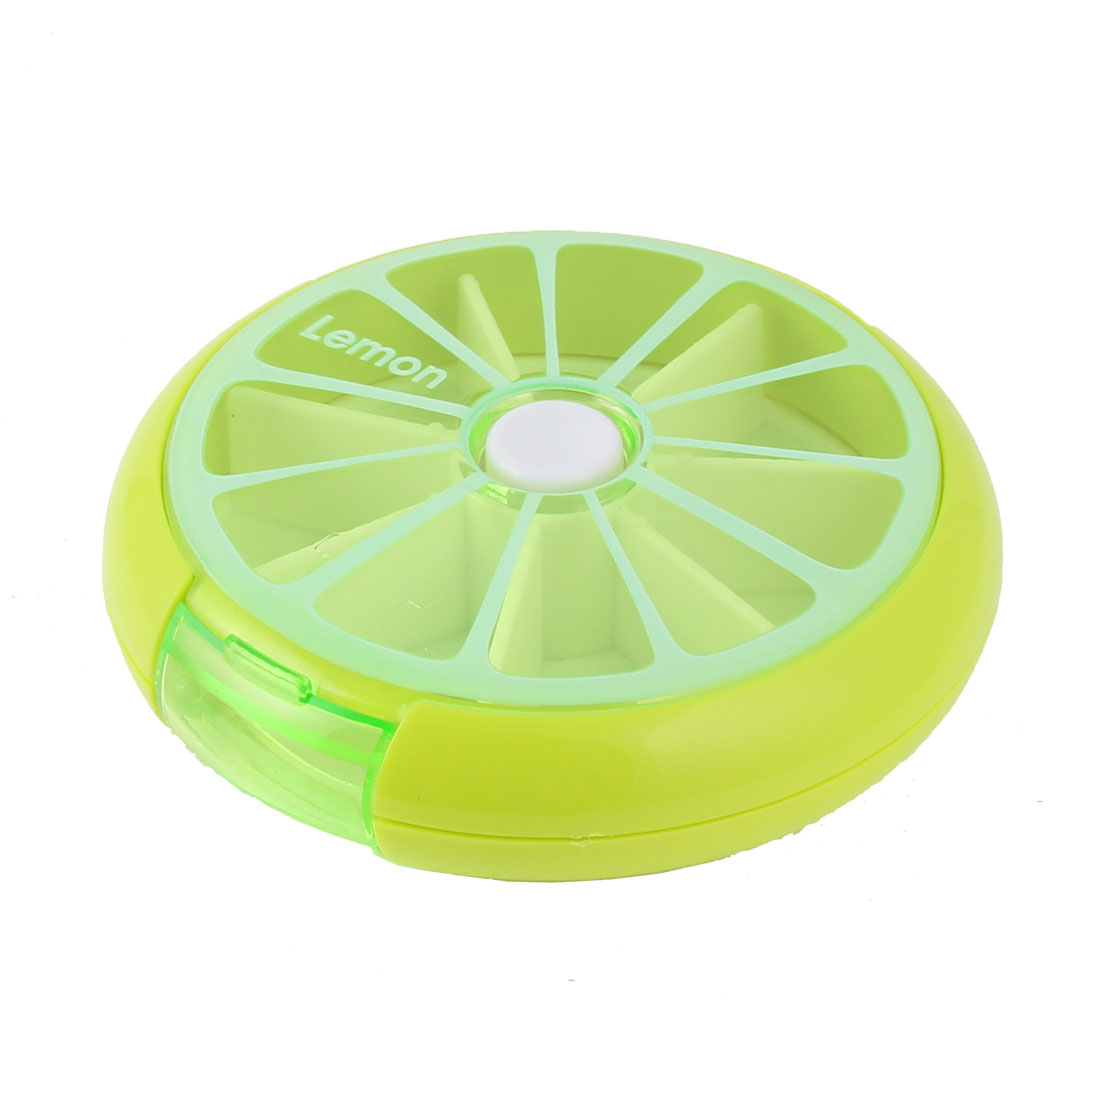 Household Travel Plastic Lemon Shaped Medicine Pill Box Case Container Green